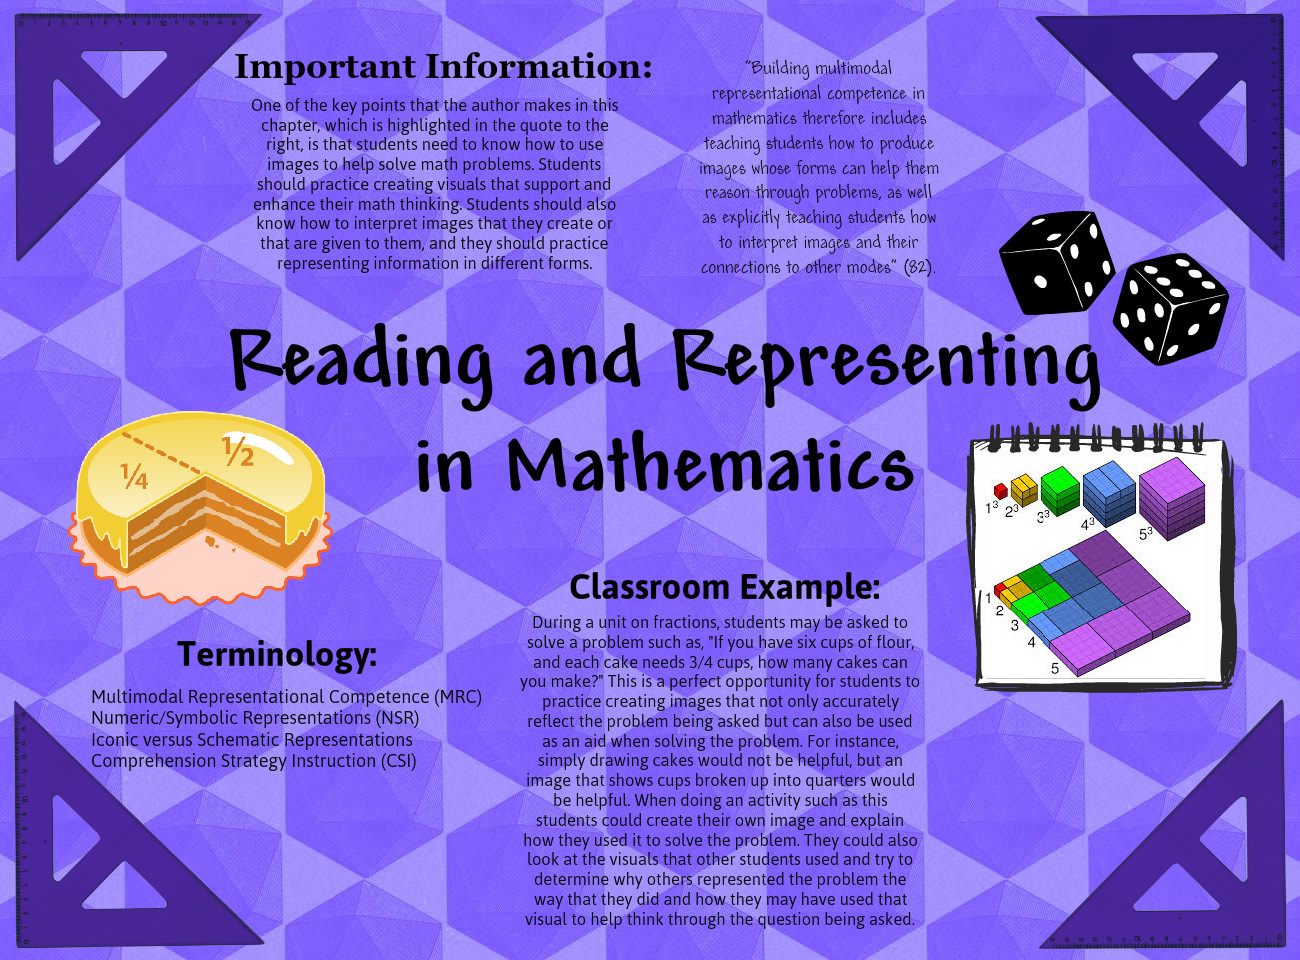 Reading and Representing in Mathematics